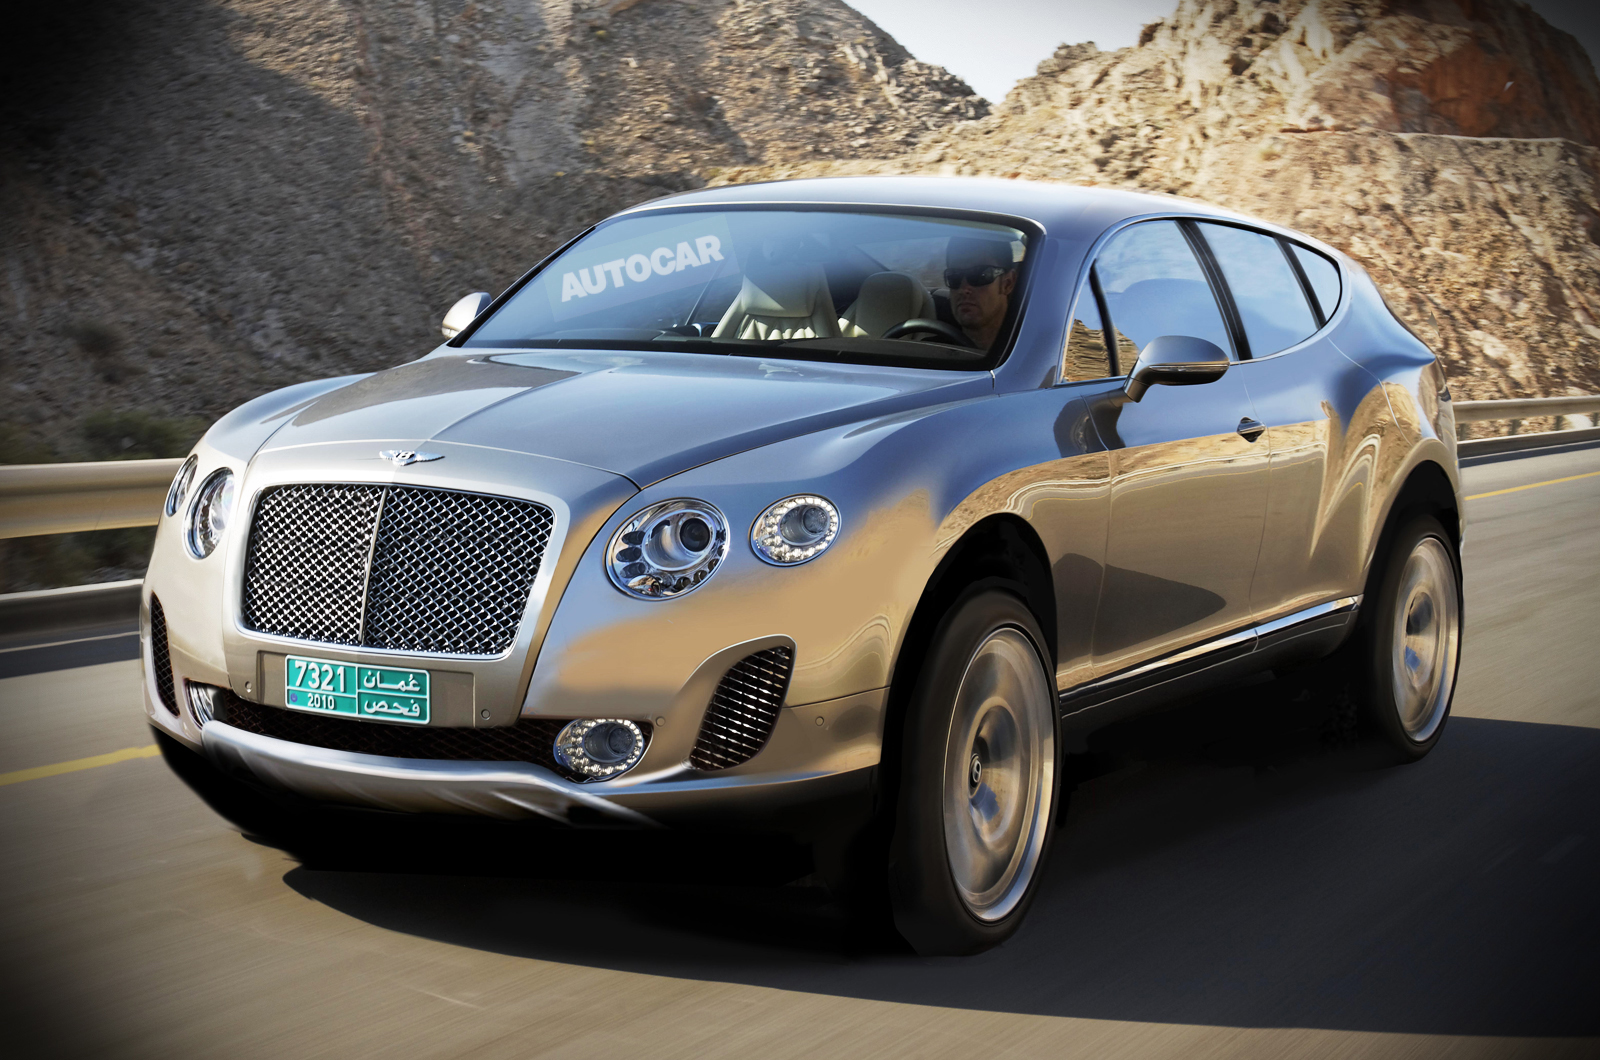 2018 bentley suv. modren suv render autocar and 2018 bentley suv